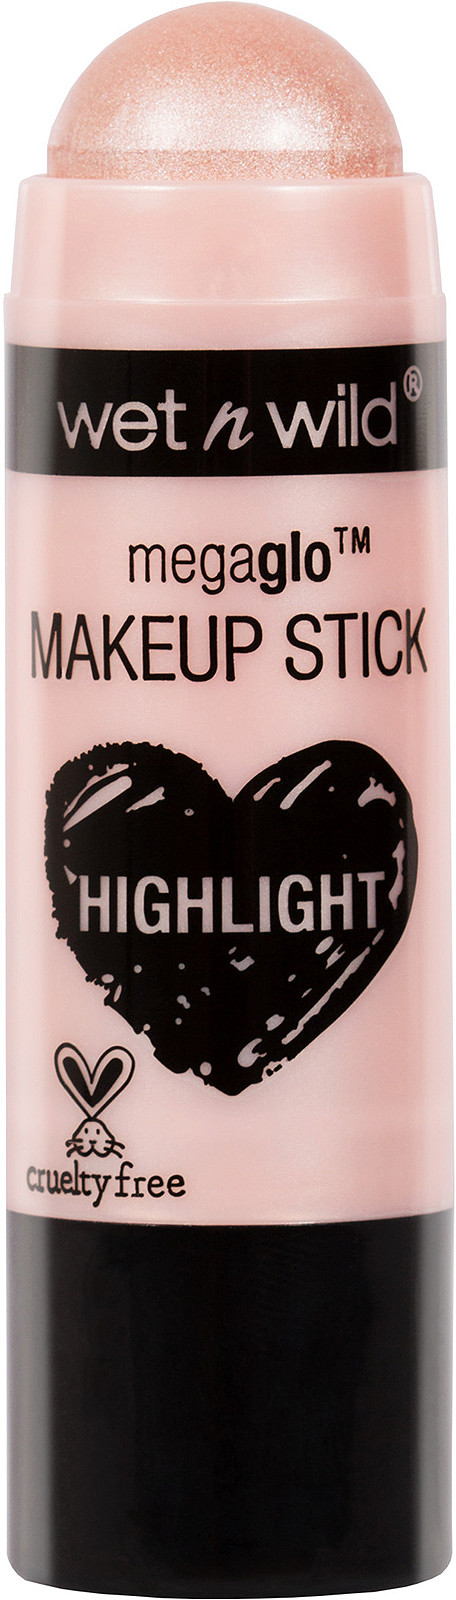 Wet n Wild Online Only MegaGlo Makeup Stick Conceal and Contour | Ulta Beauty